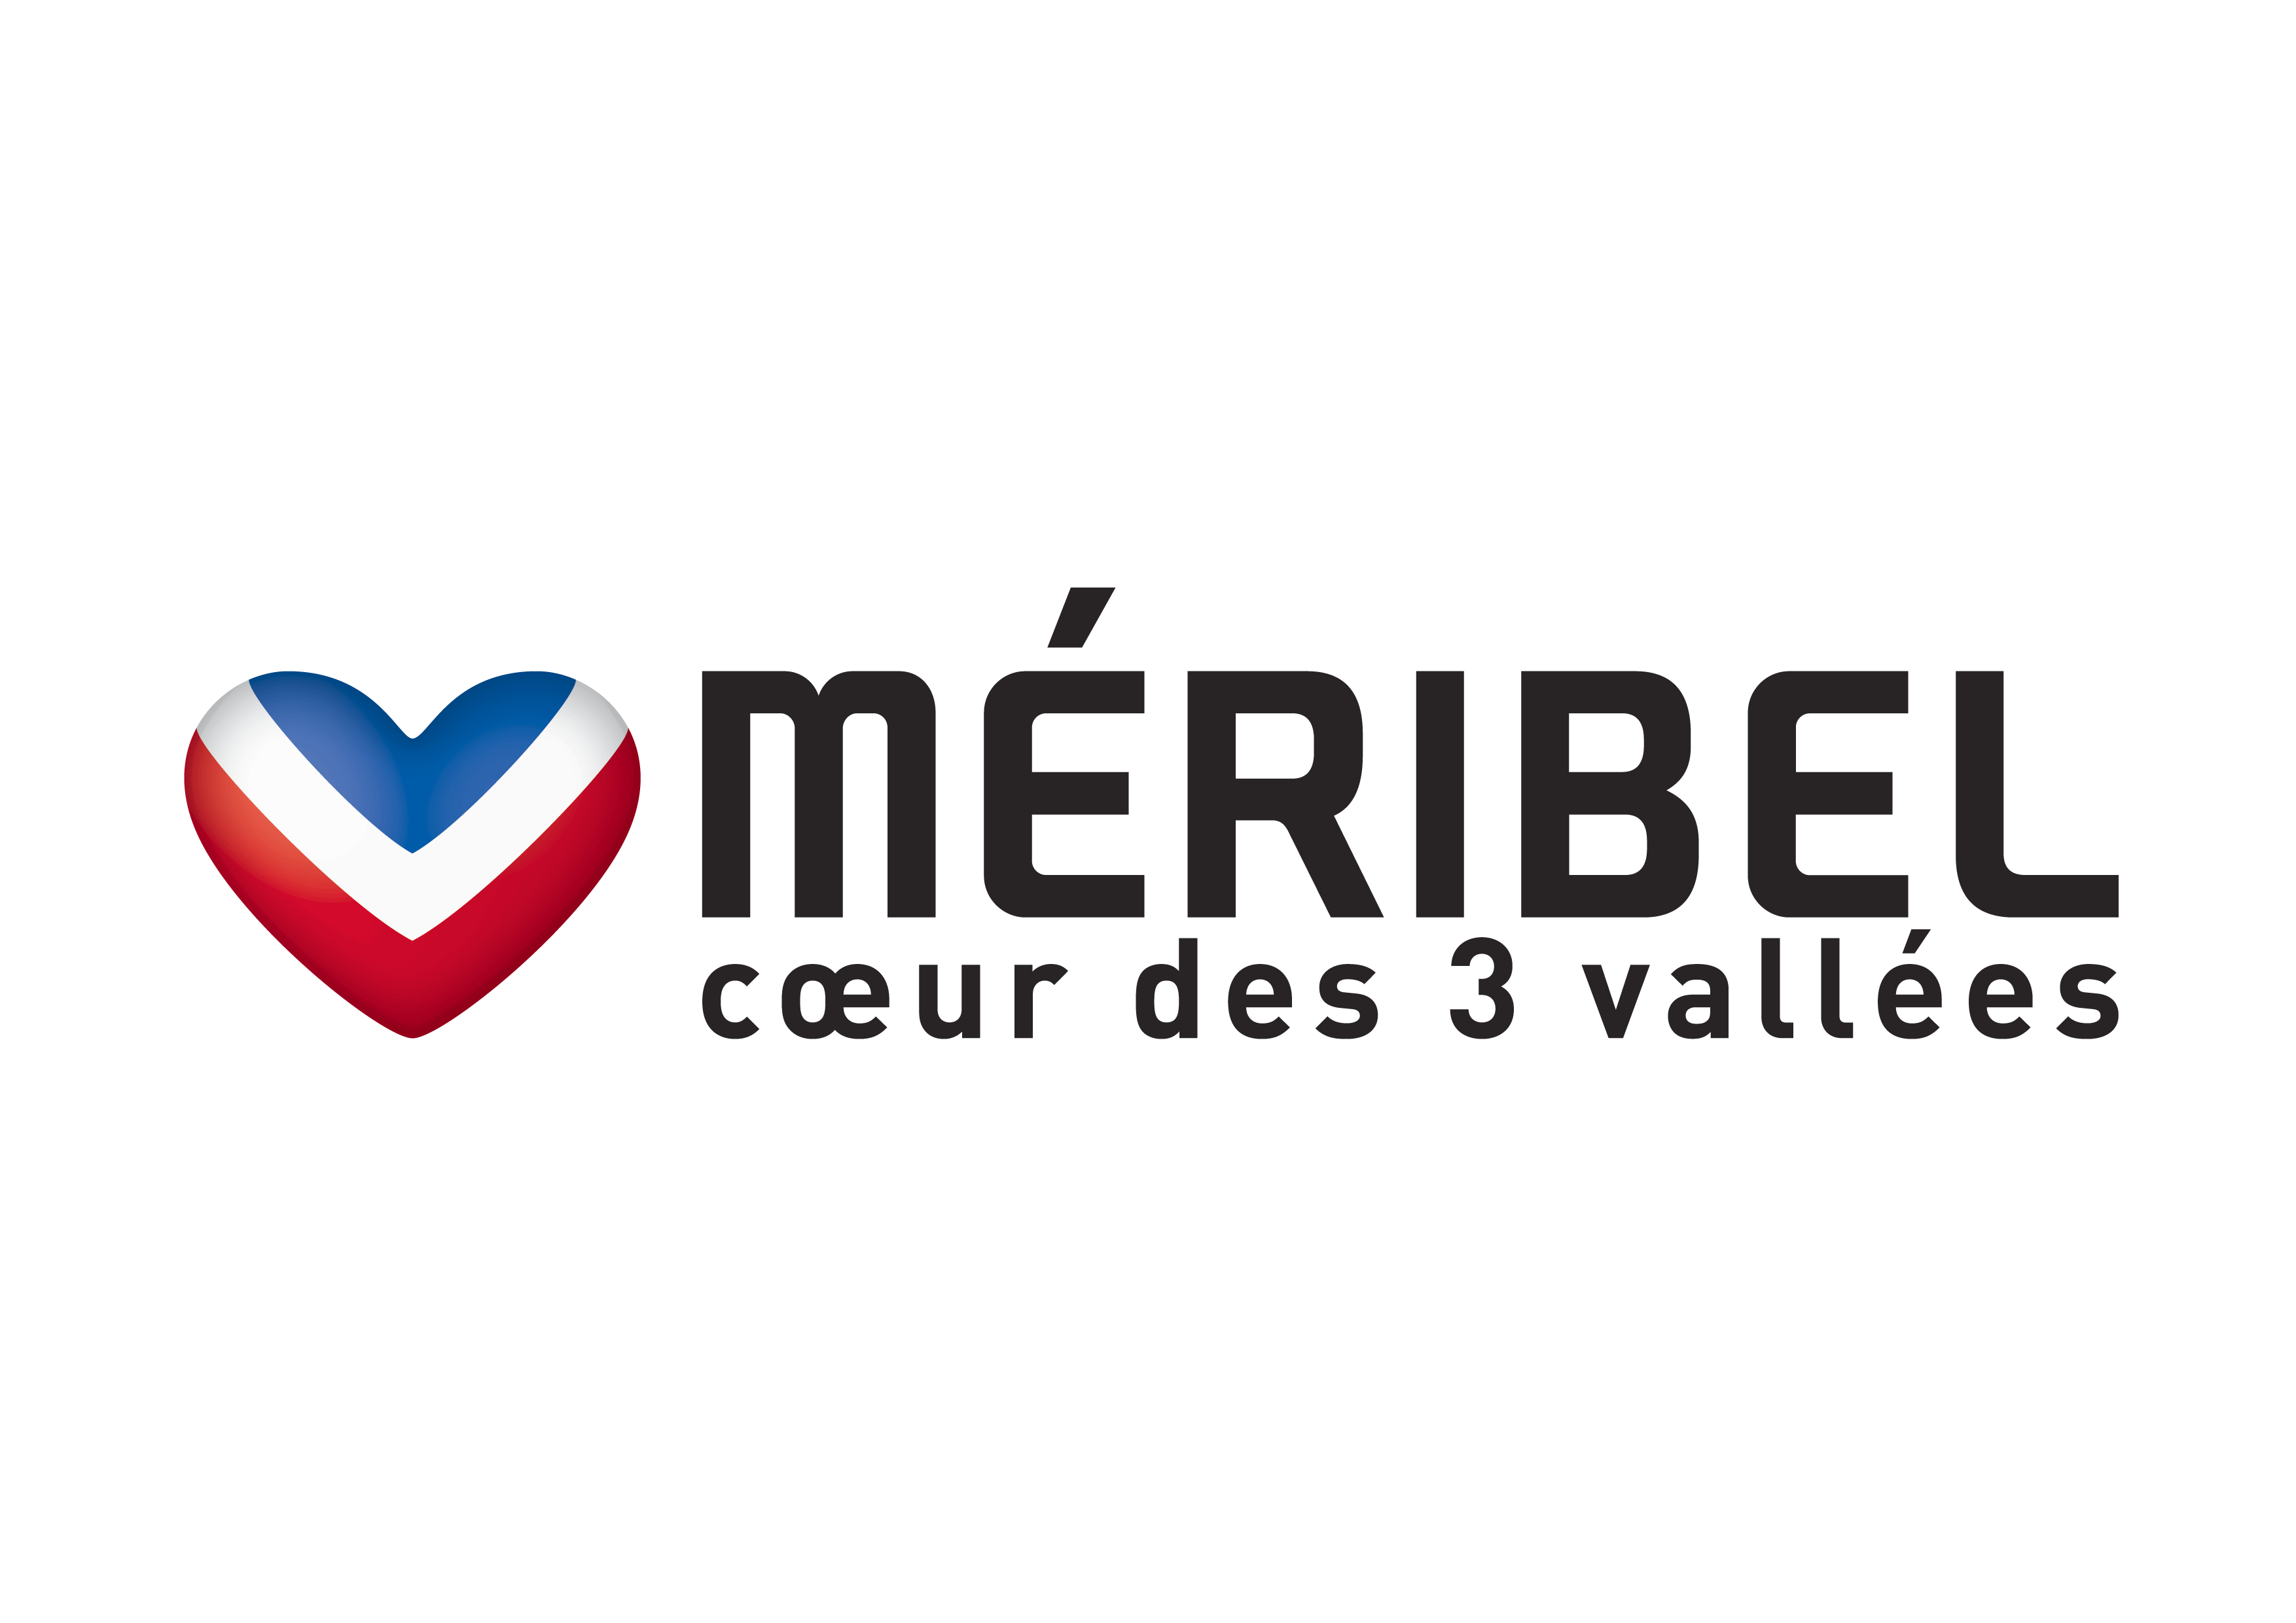 Méribel Valley